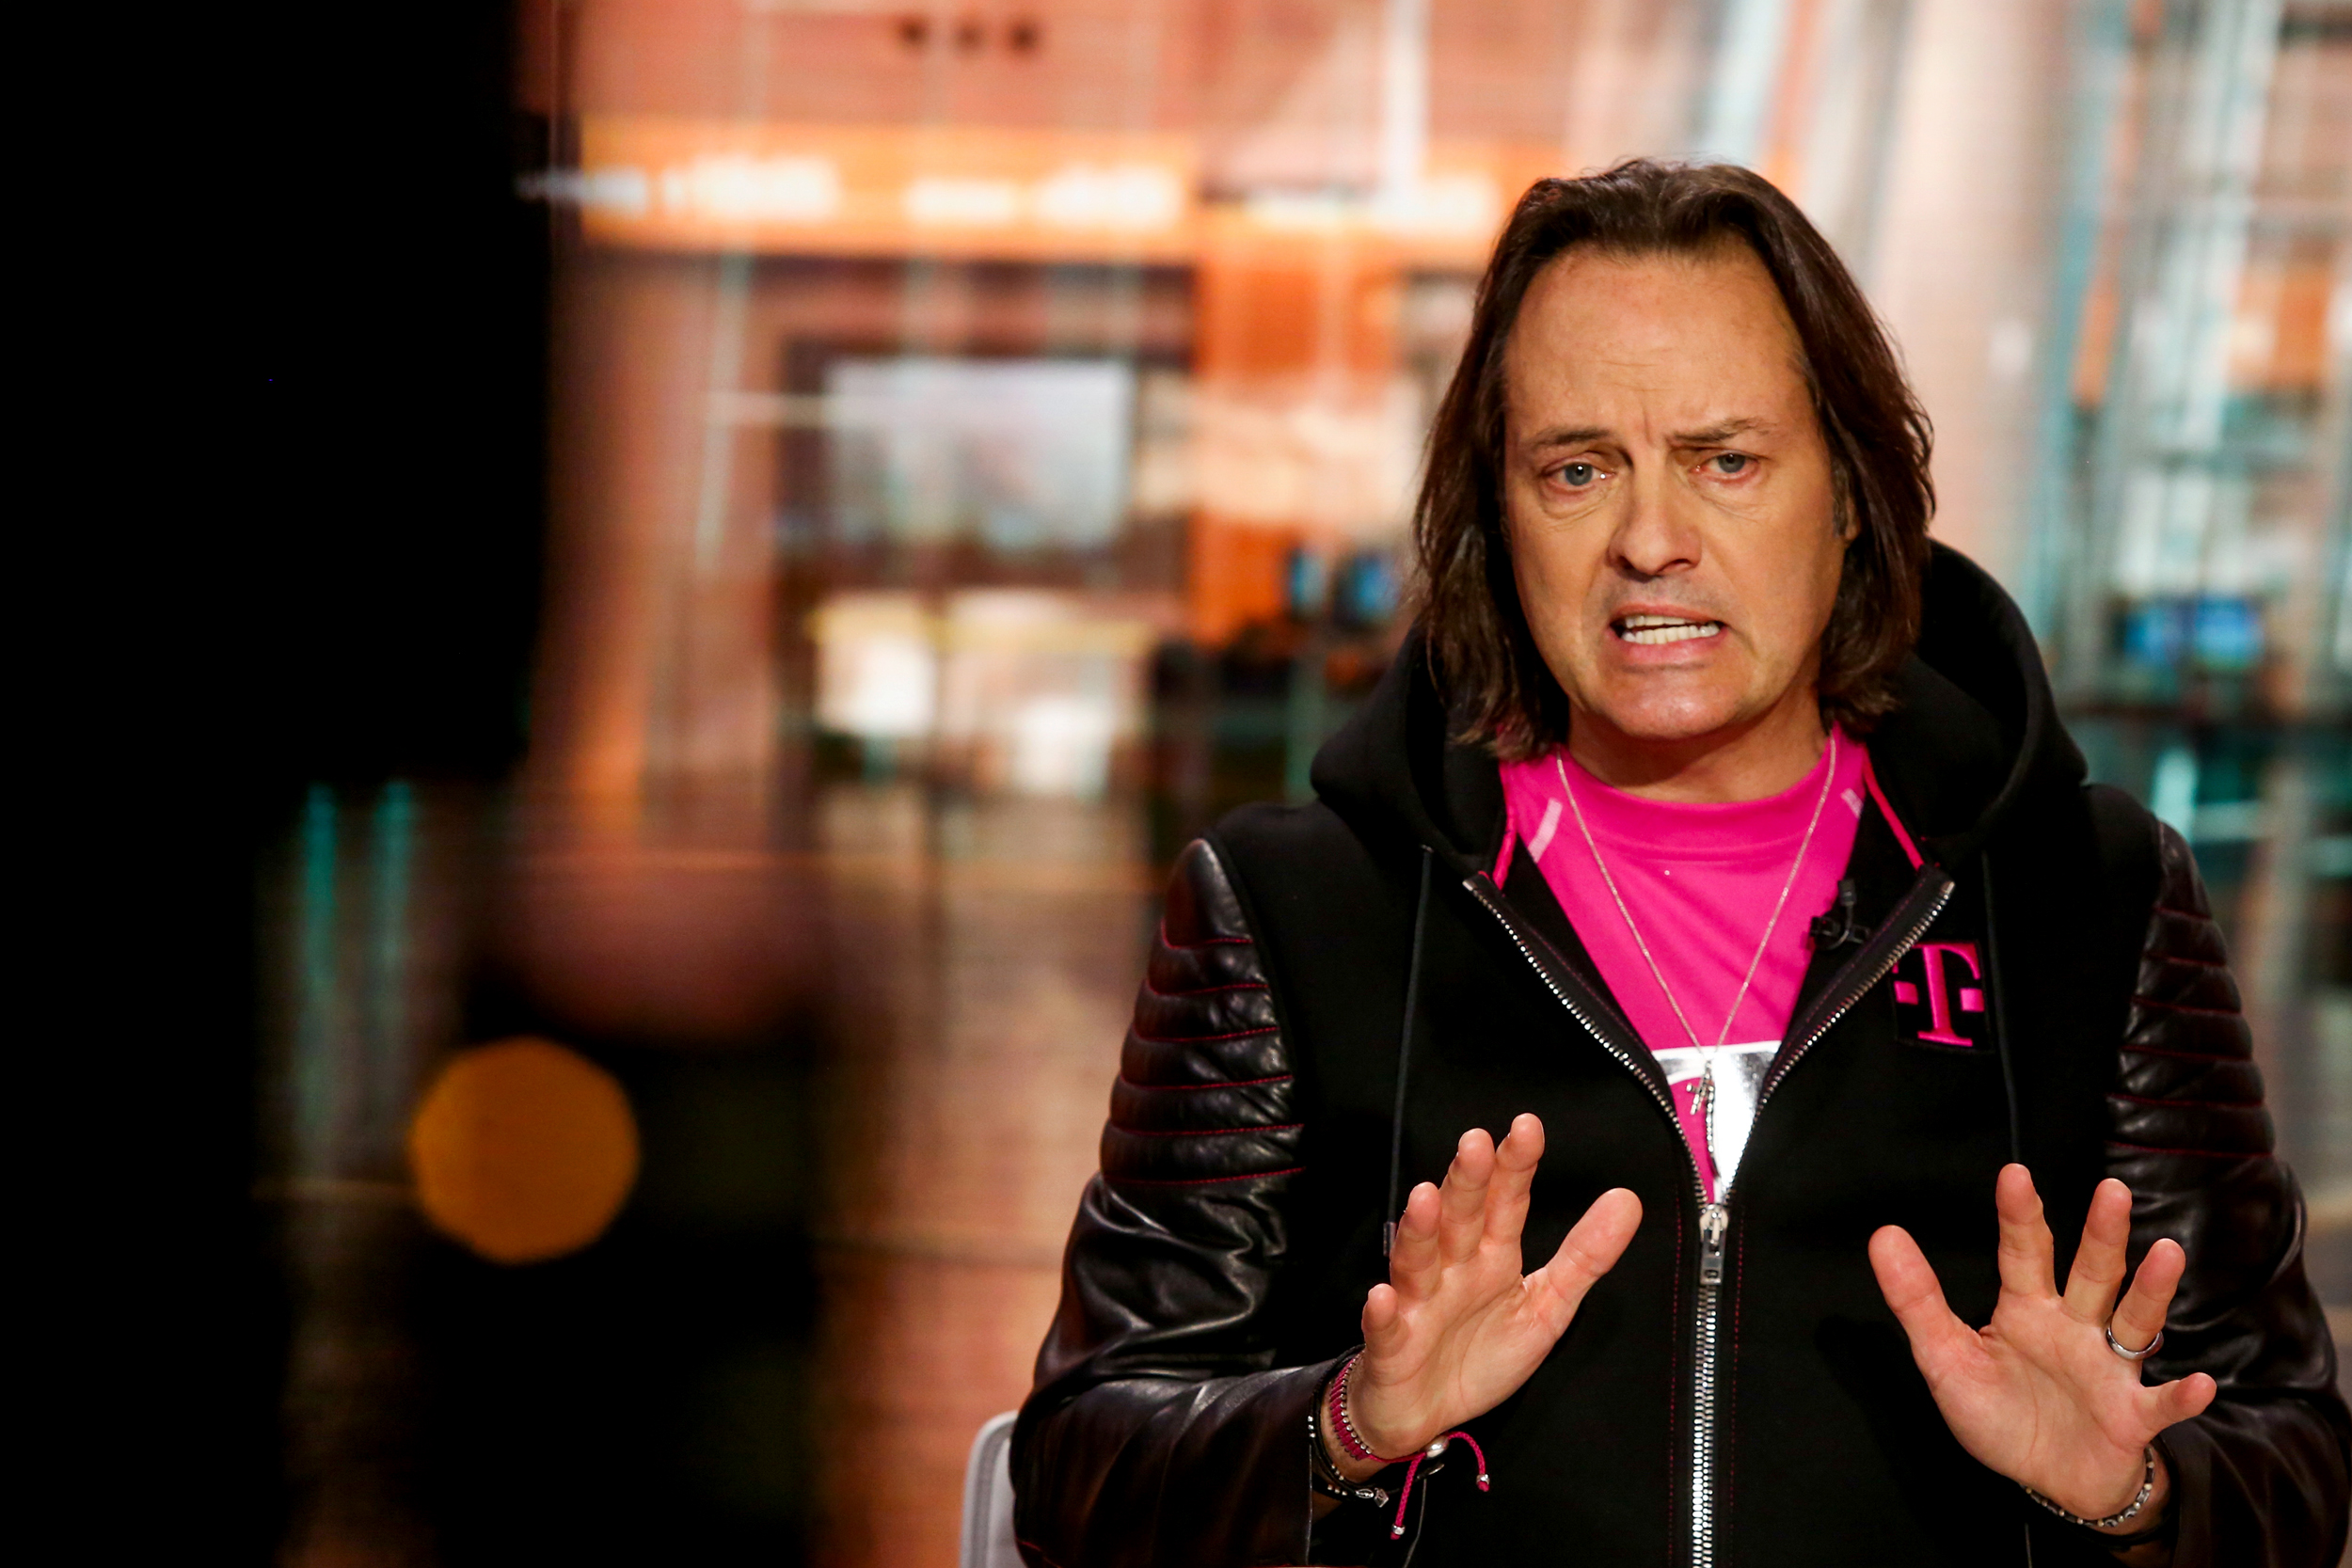 T Mobile Ceo John Legere To Step Down Next Year